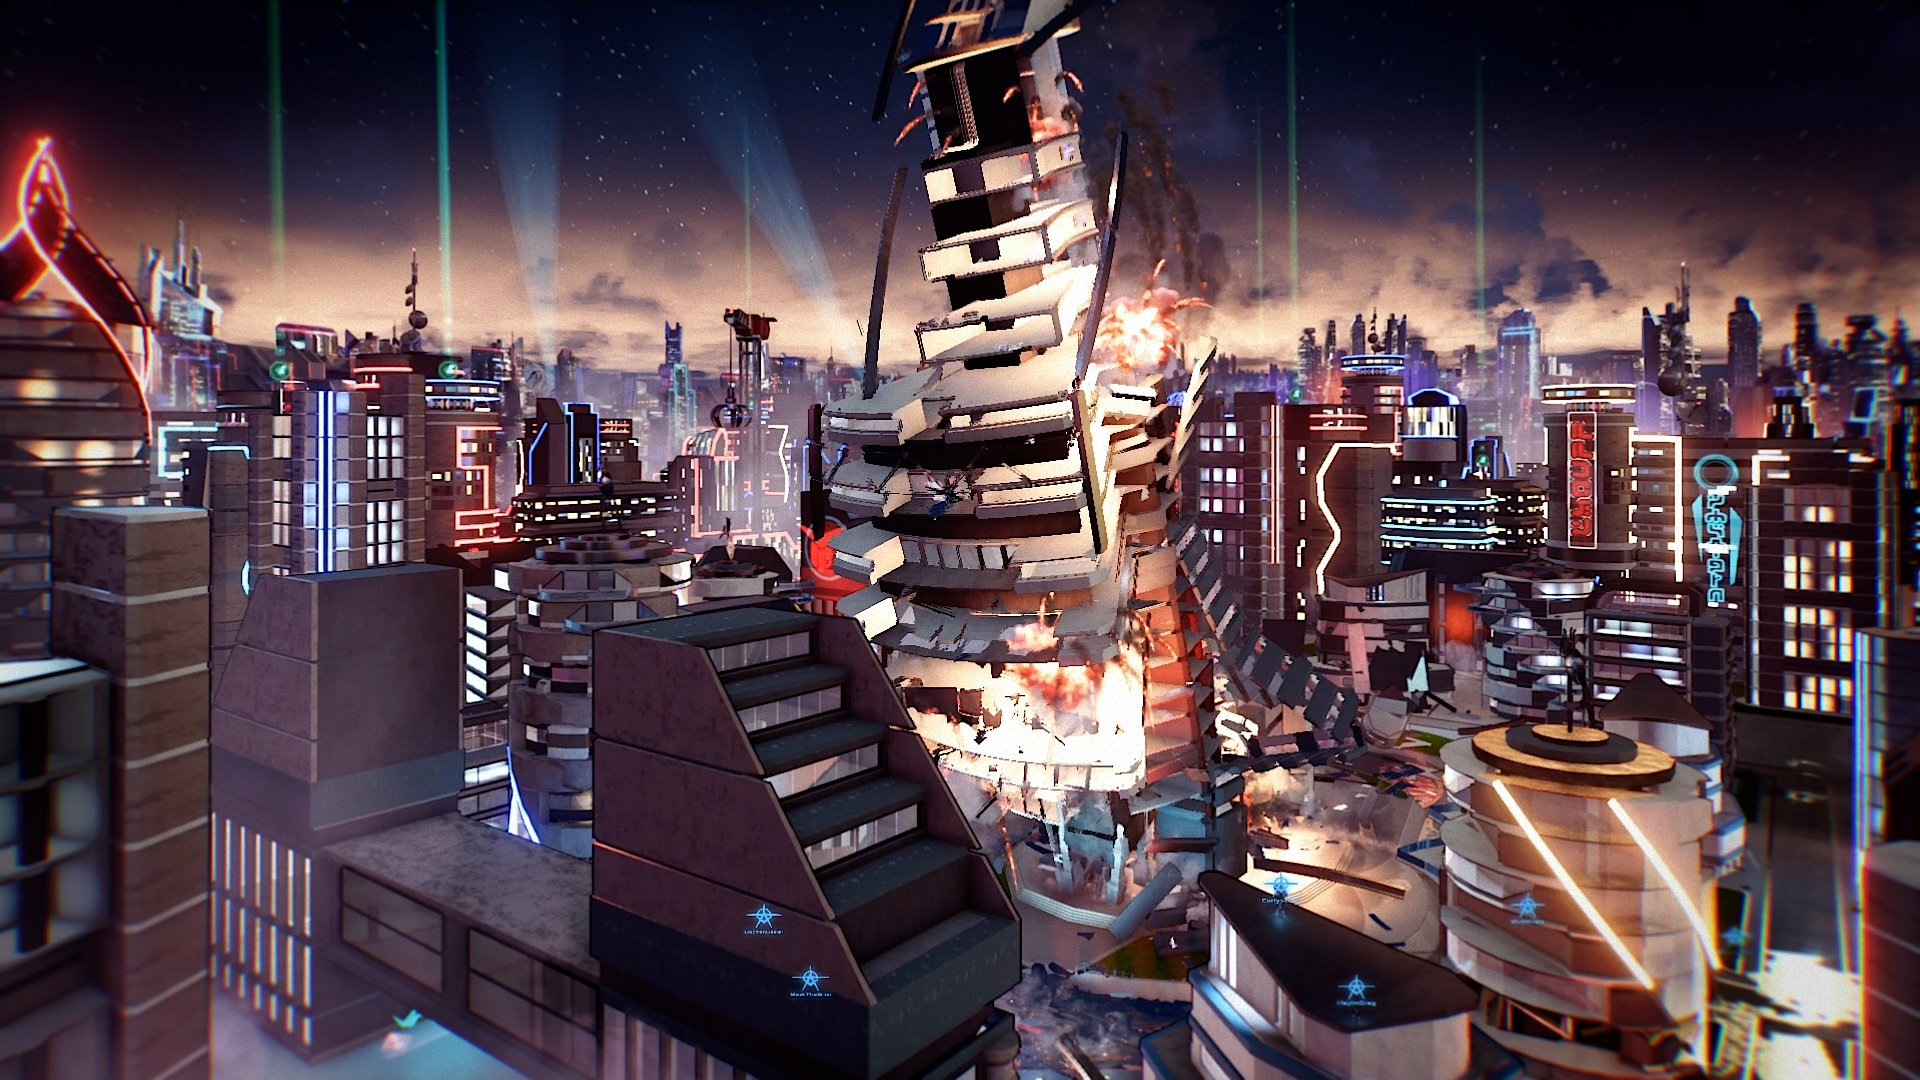 How to play with a friend in Crackdown 3